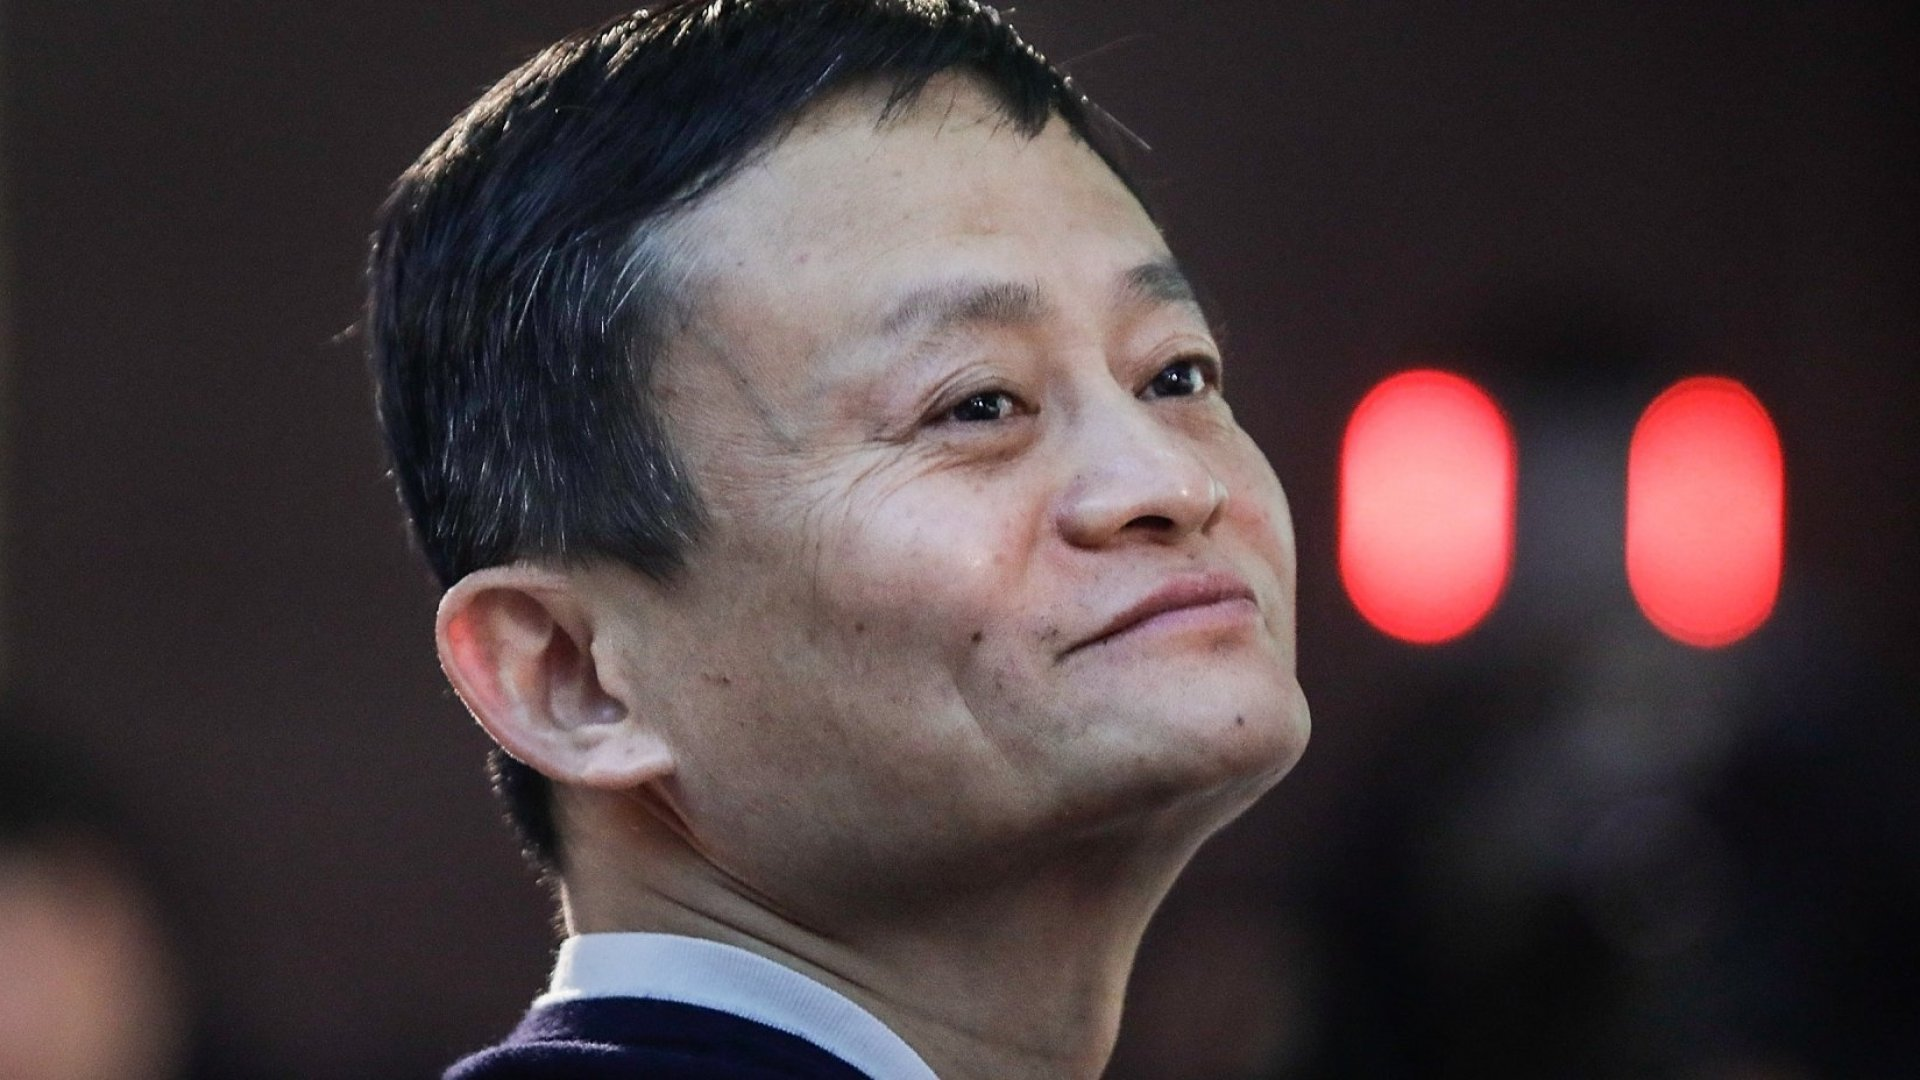 Alibaba Co-Founder Jack Ma Stayed at the Top for 20 Years by Doing These 3 Things